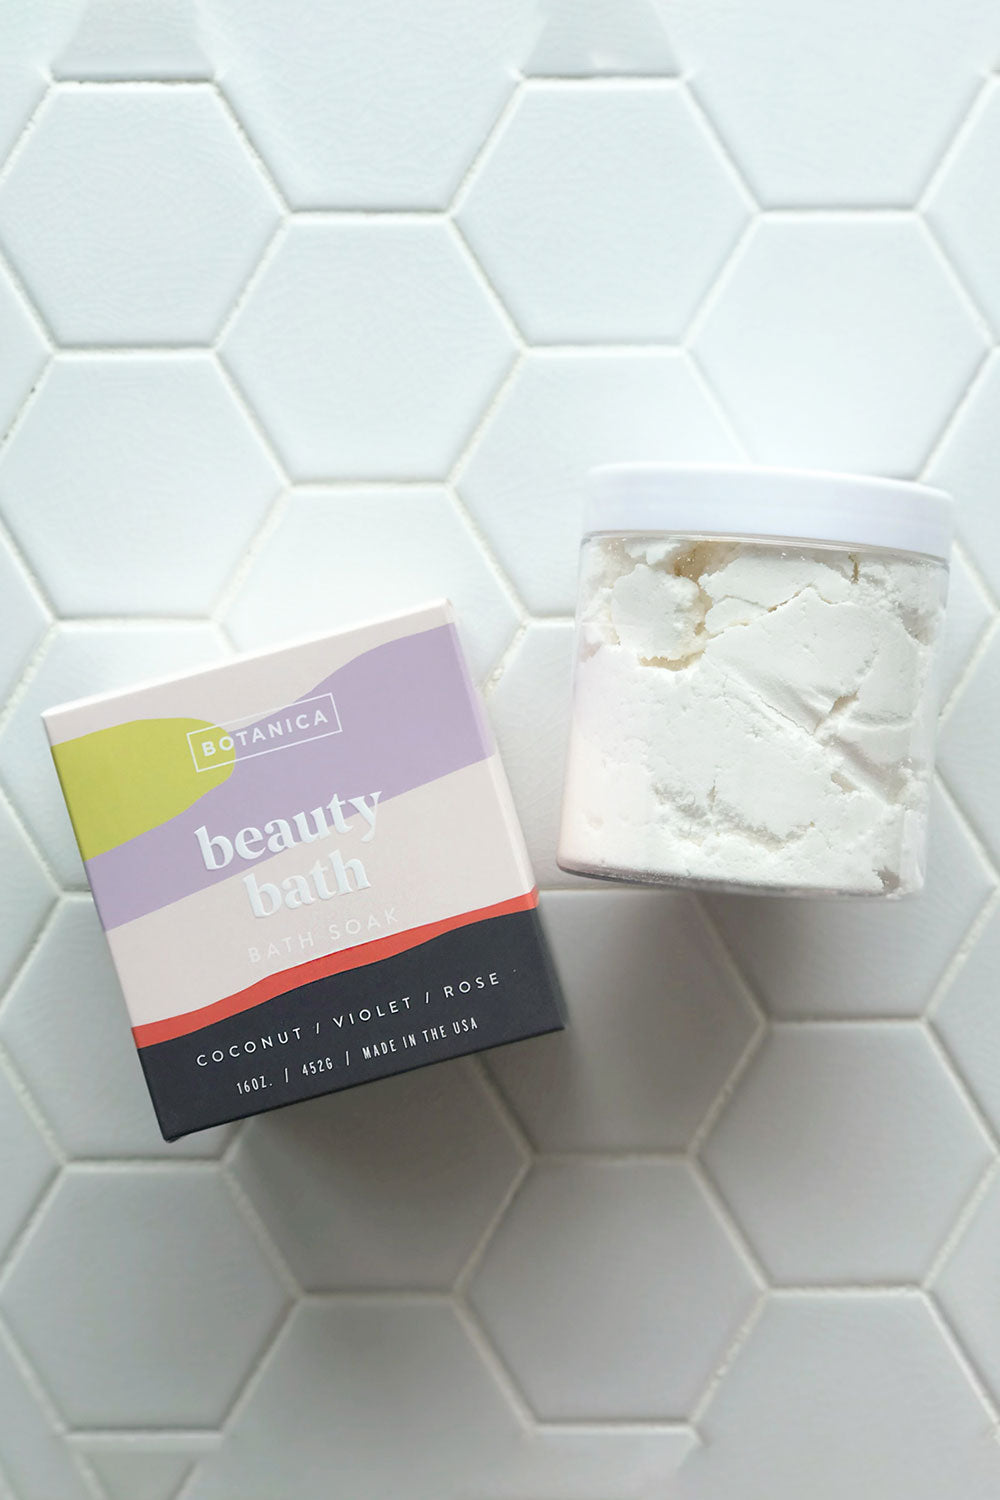 Botanica Beauty Bath